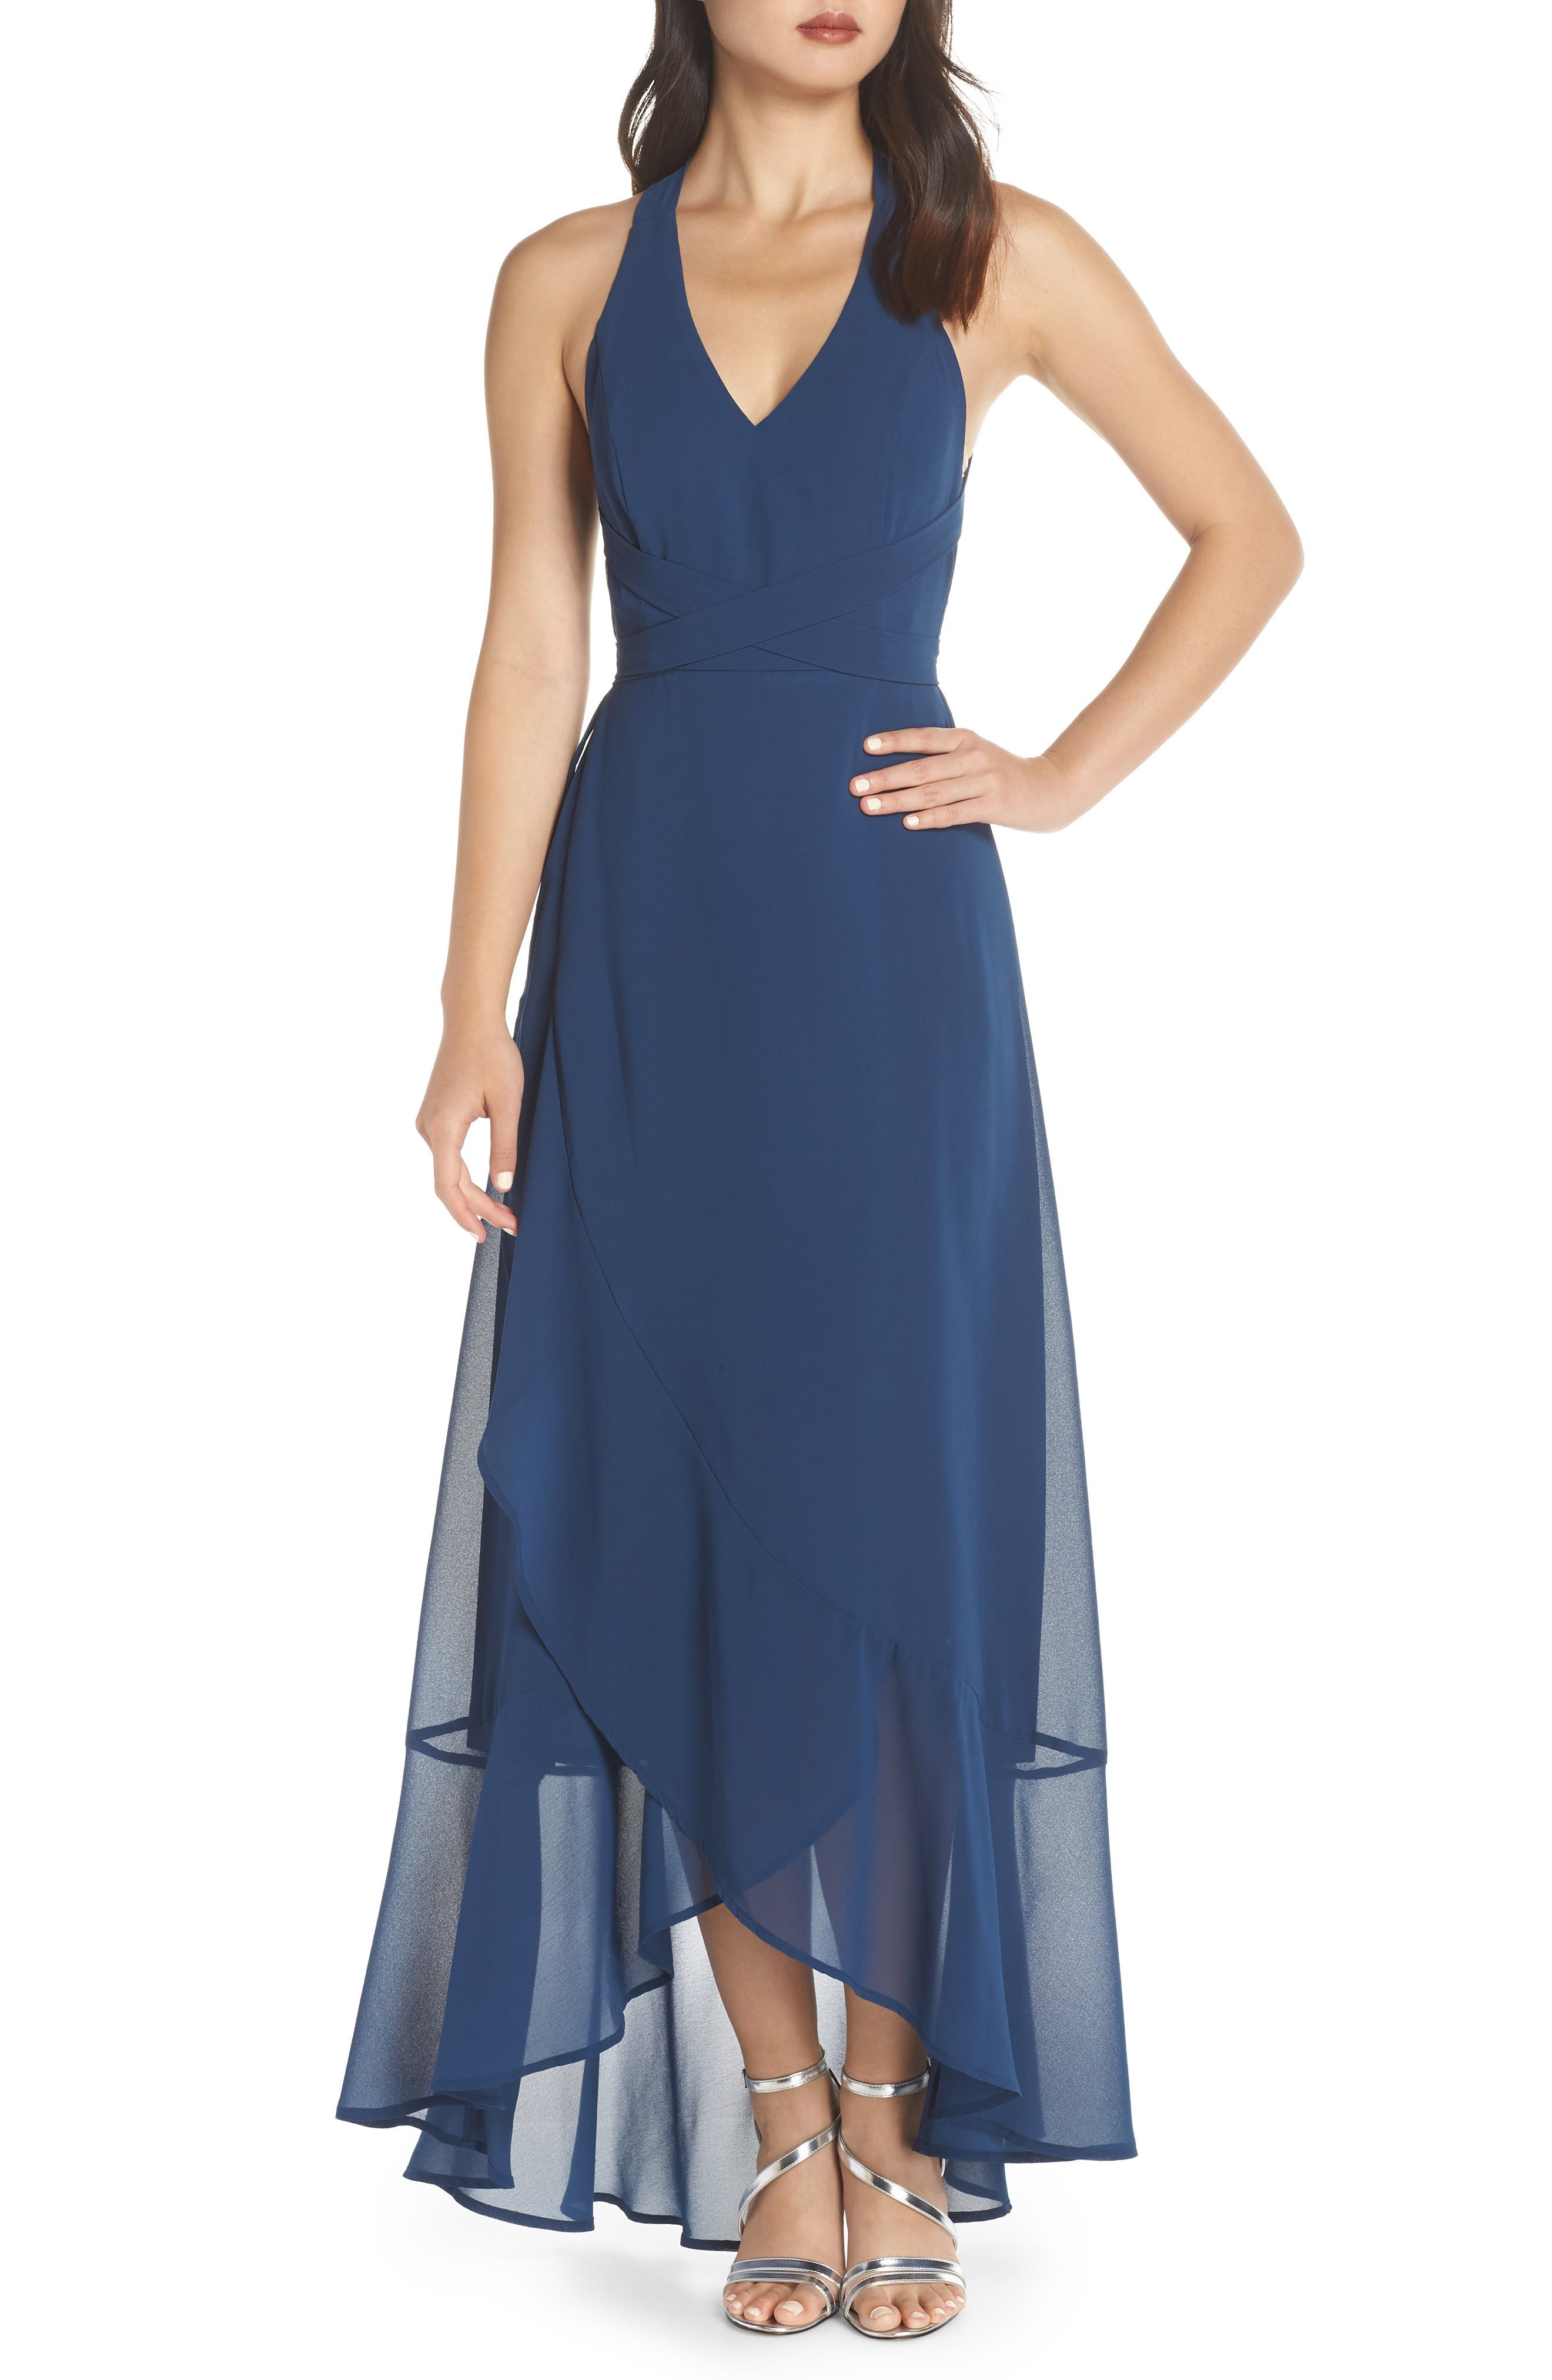 LULUS, Wrap of Luxury Convertible Gown, Main thumbnail 1, color, NAVY